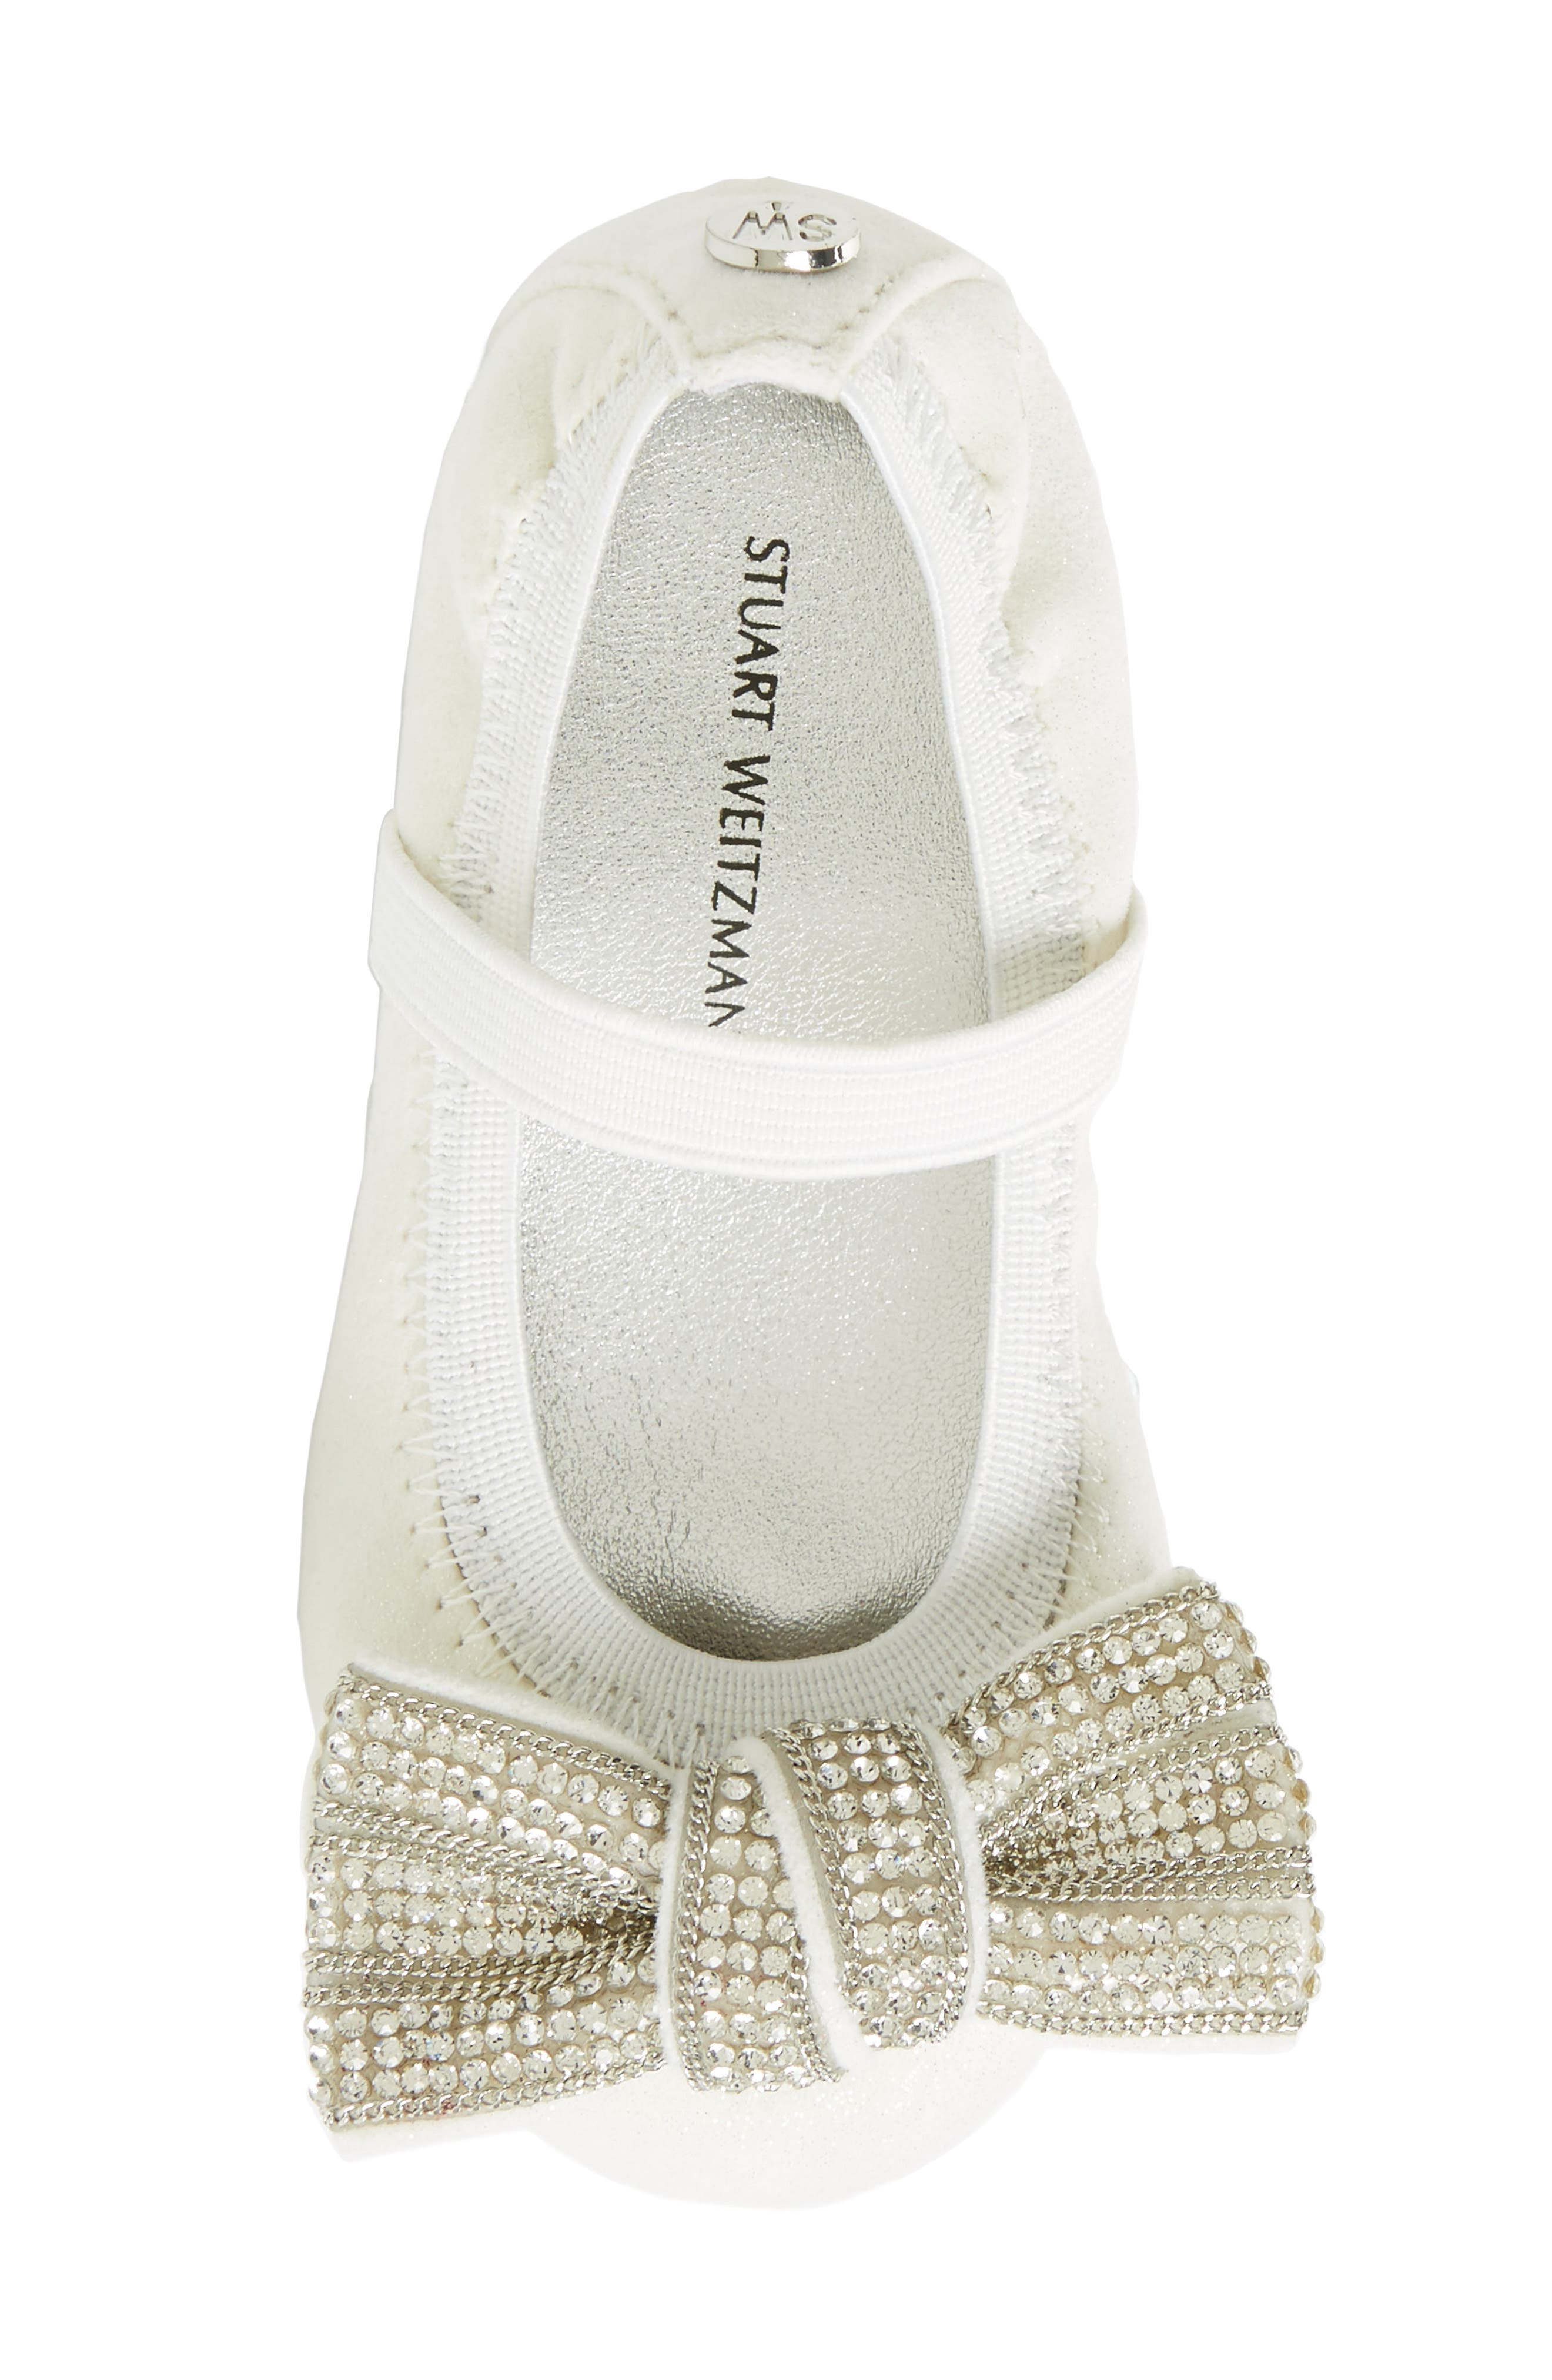 Fannie Embellished Bow Mary Jane Flat,                             Alternate thumbnail 5, color,                             White